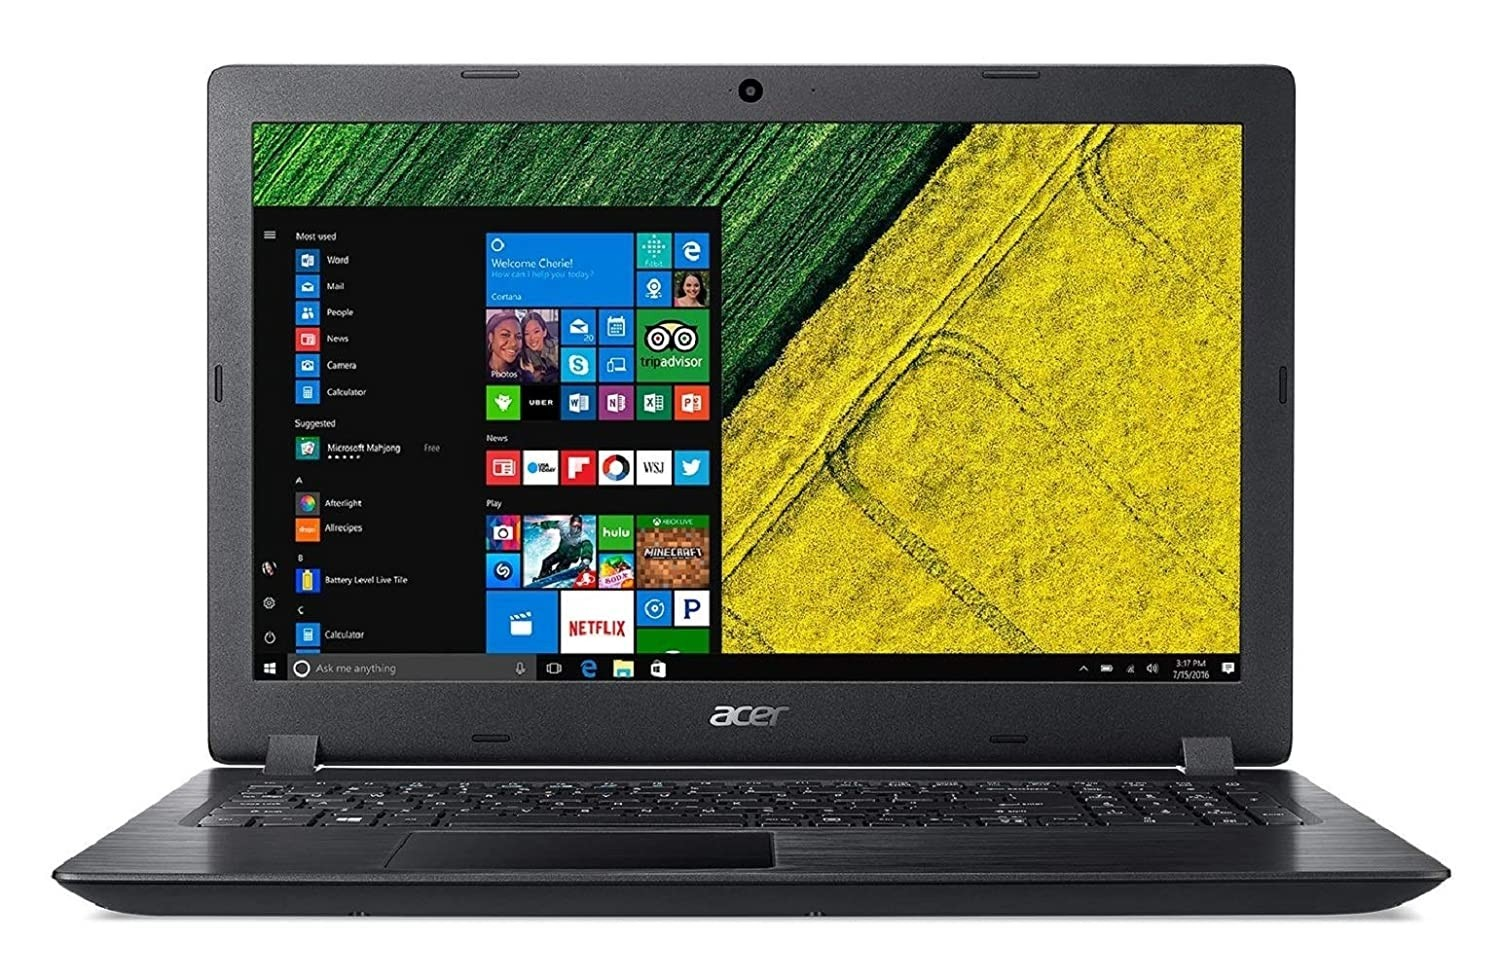 Refurbished laptops & desktops - Acer Aspire A315-21 15.6-inch Laptop (AMD A-Series Dual-Core A6-9220/4GB/1TB/Windows 10 Home/Integrated Graphics)